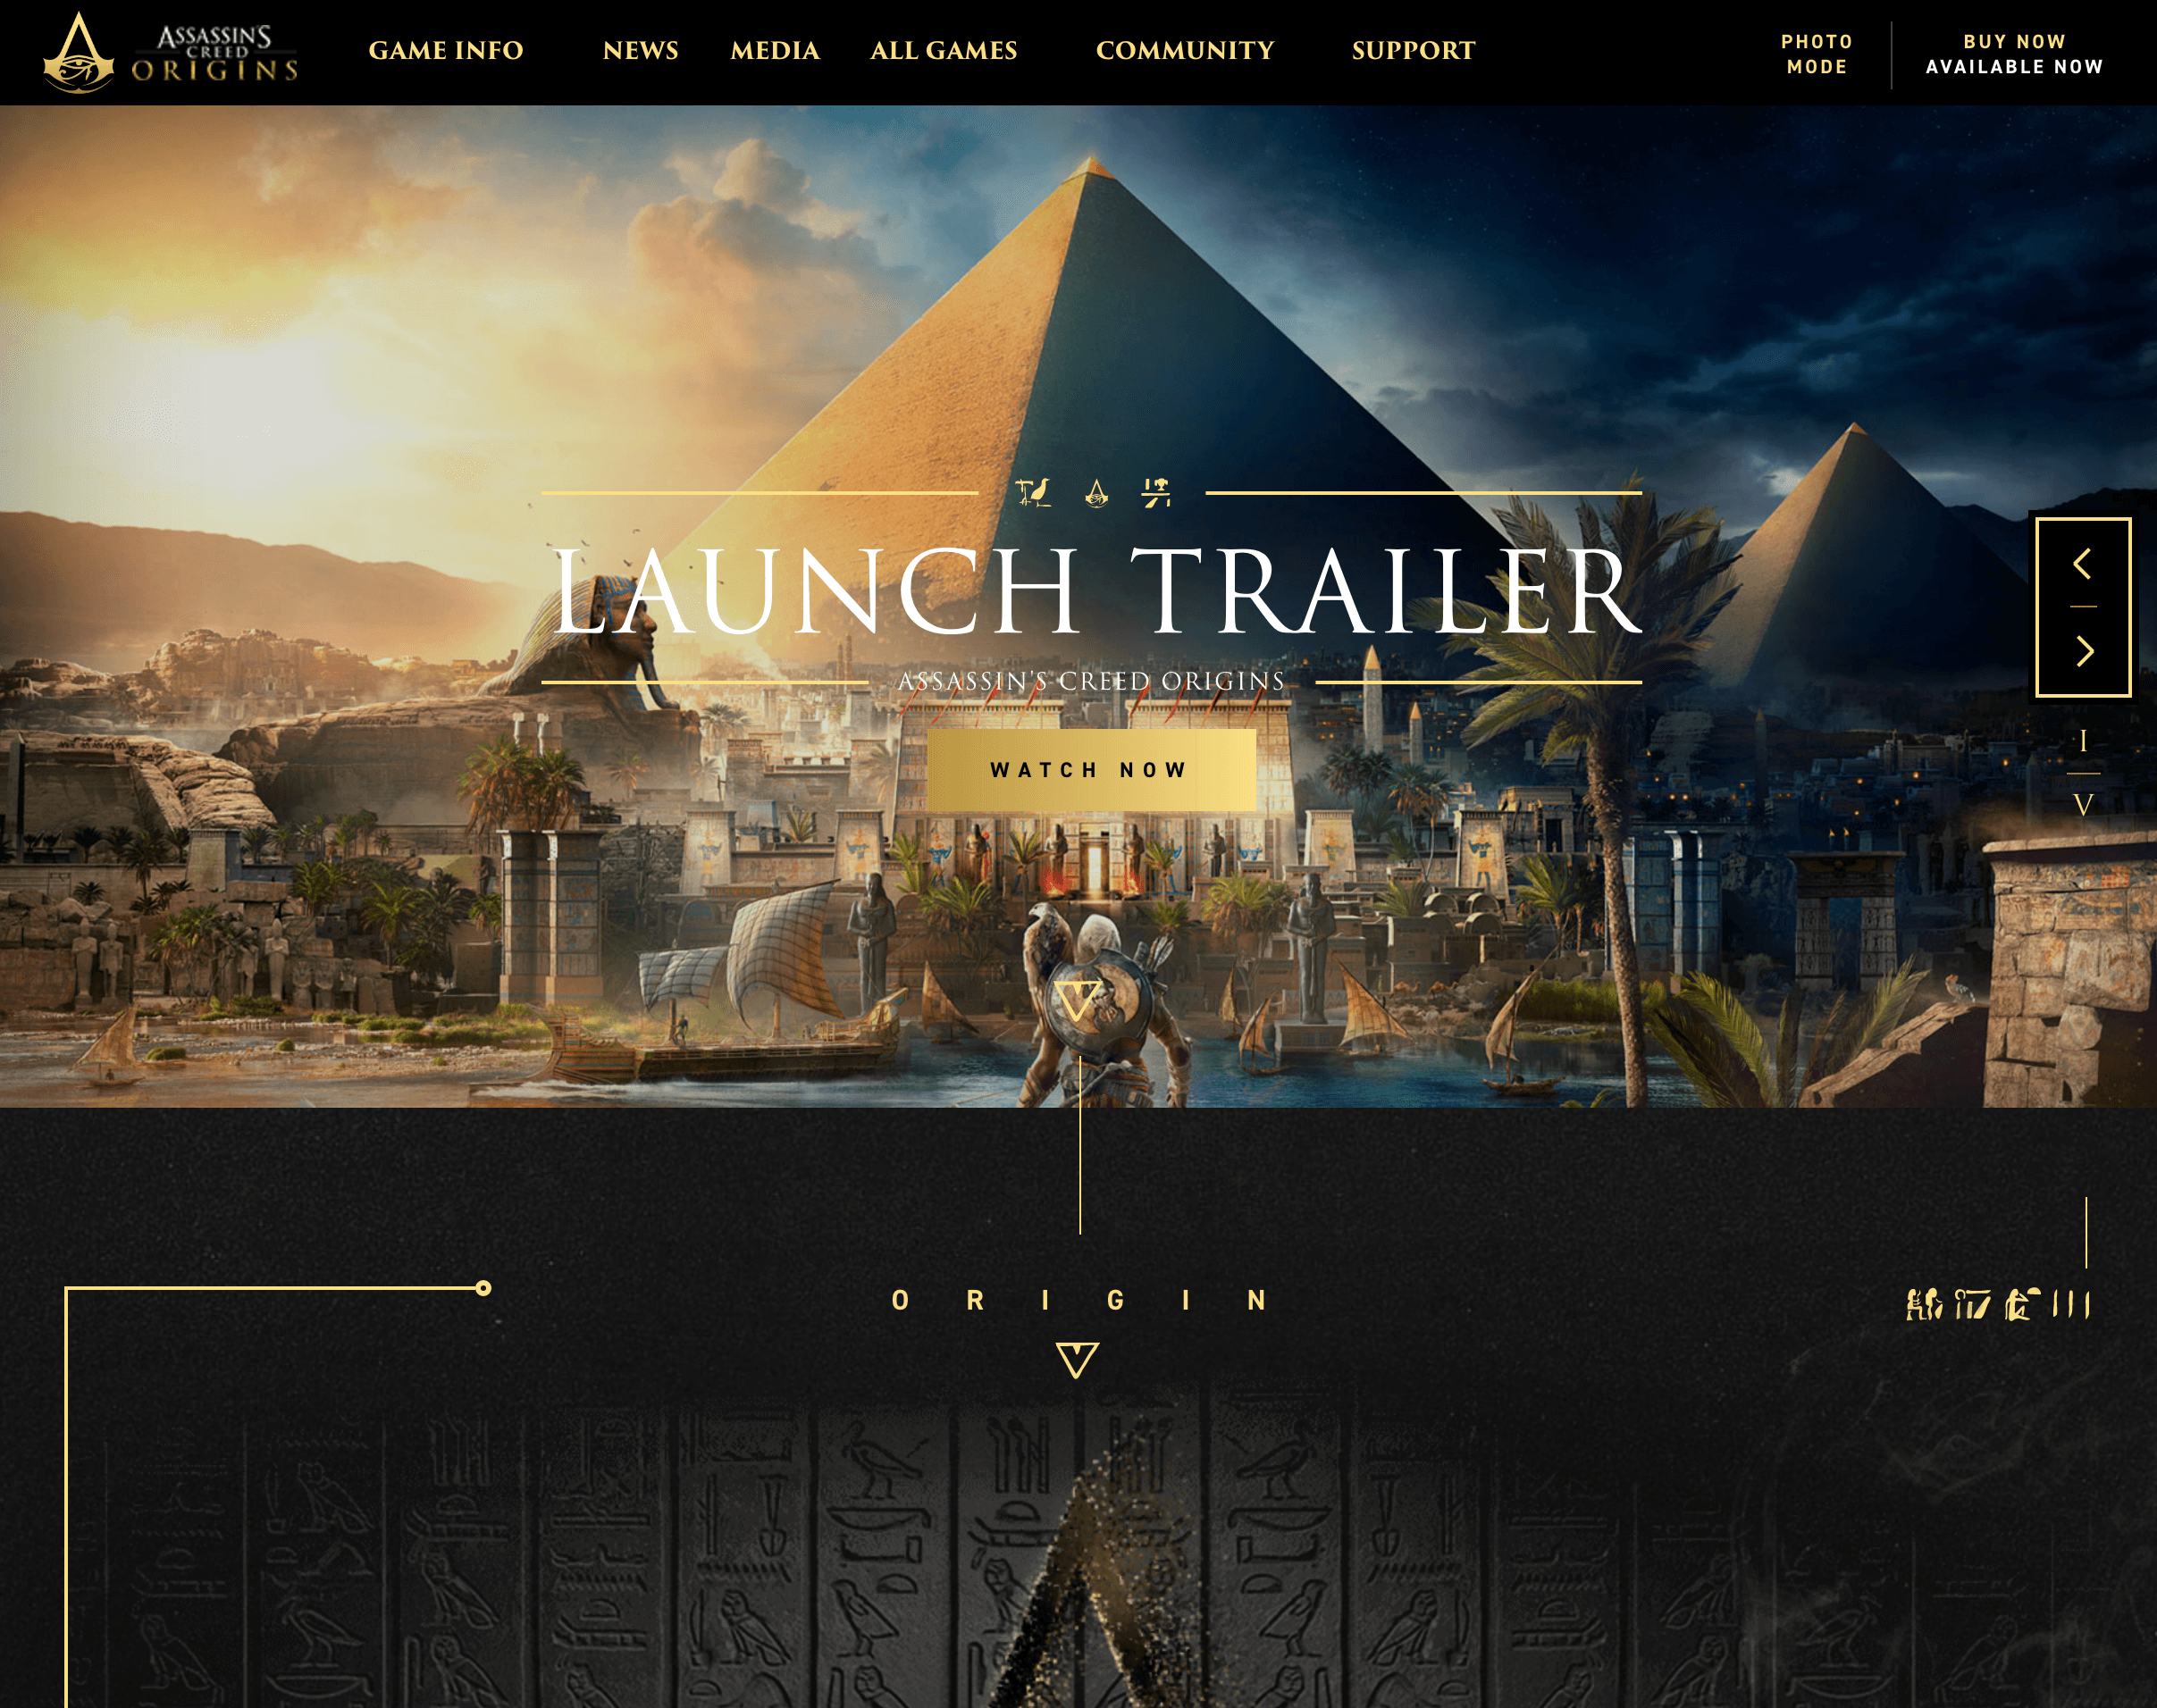 Screenshot of Ubisoft's website